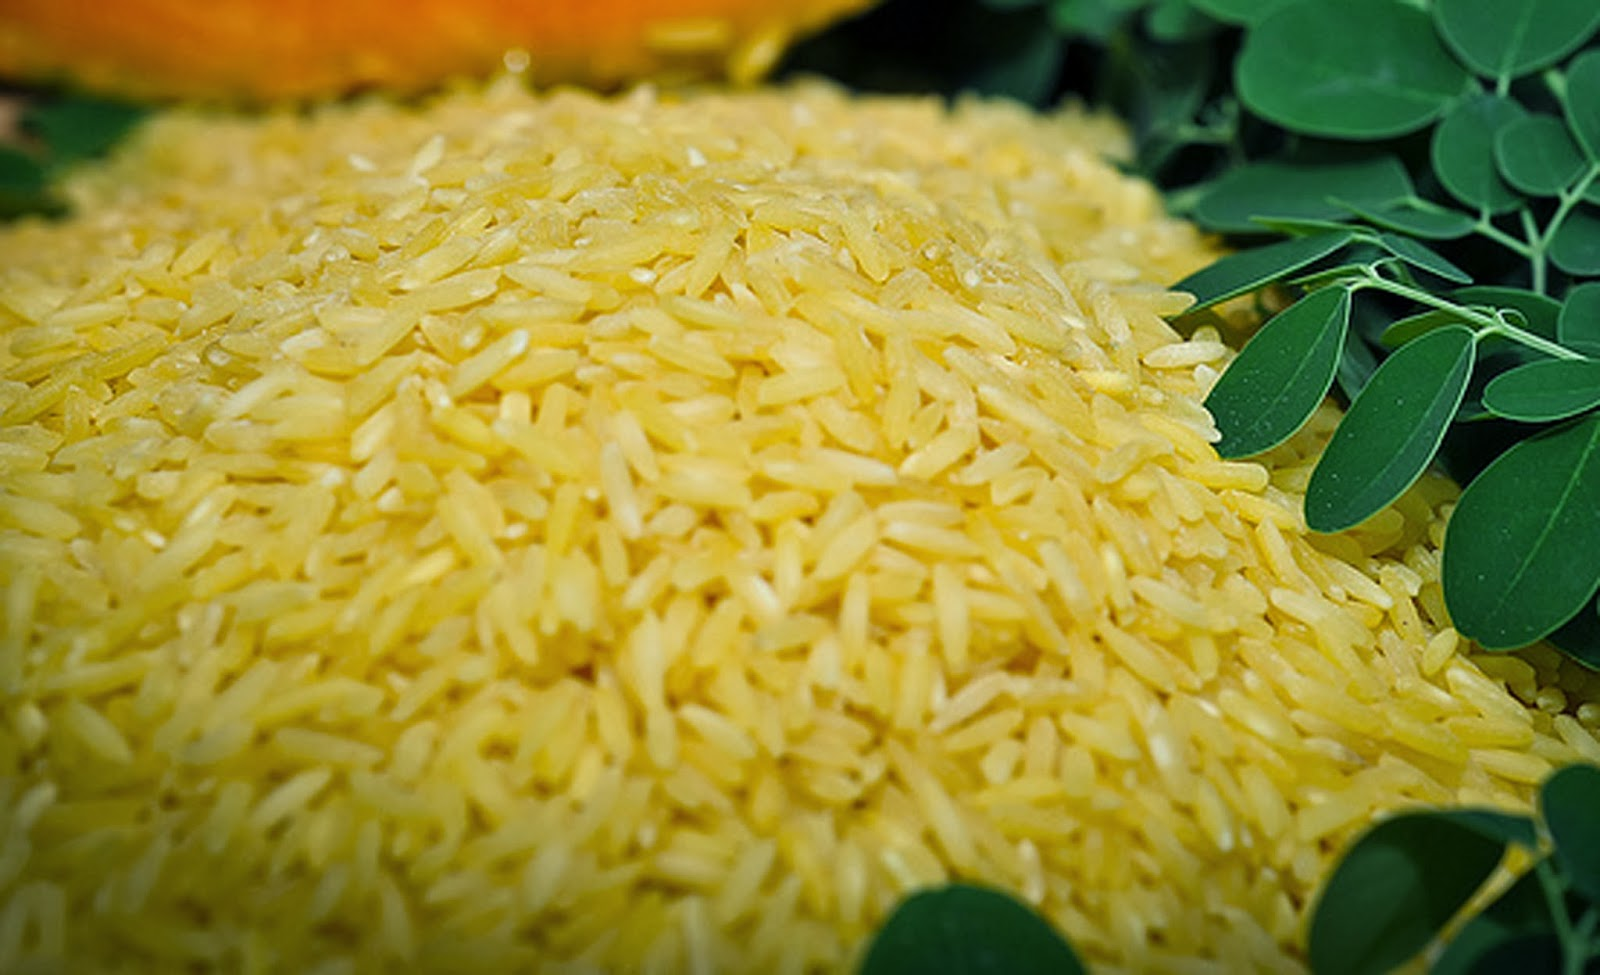 Agriculture, Economy, Food, Genetically Modified, Gold, Golden, Golden Rice, International Rice Research Institute, Market, Modified Rice, Philippine, Research, Rice,